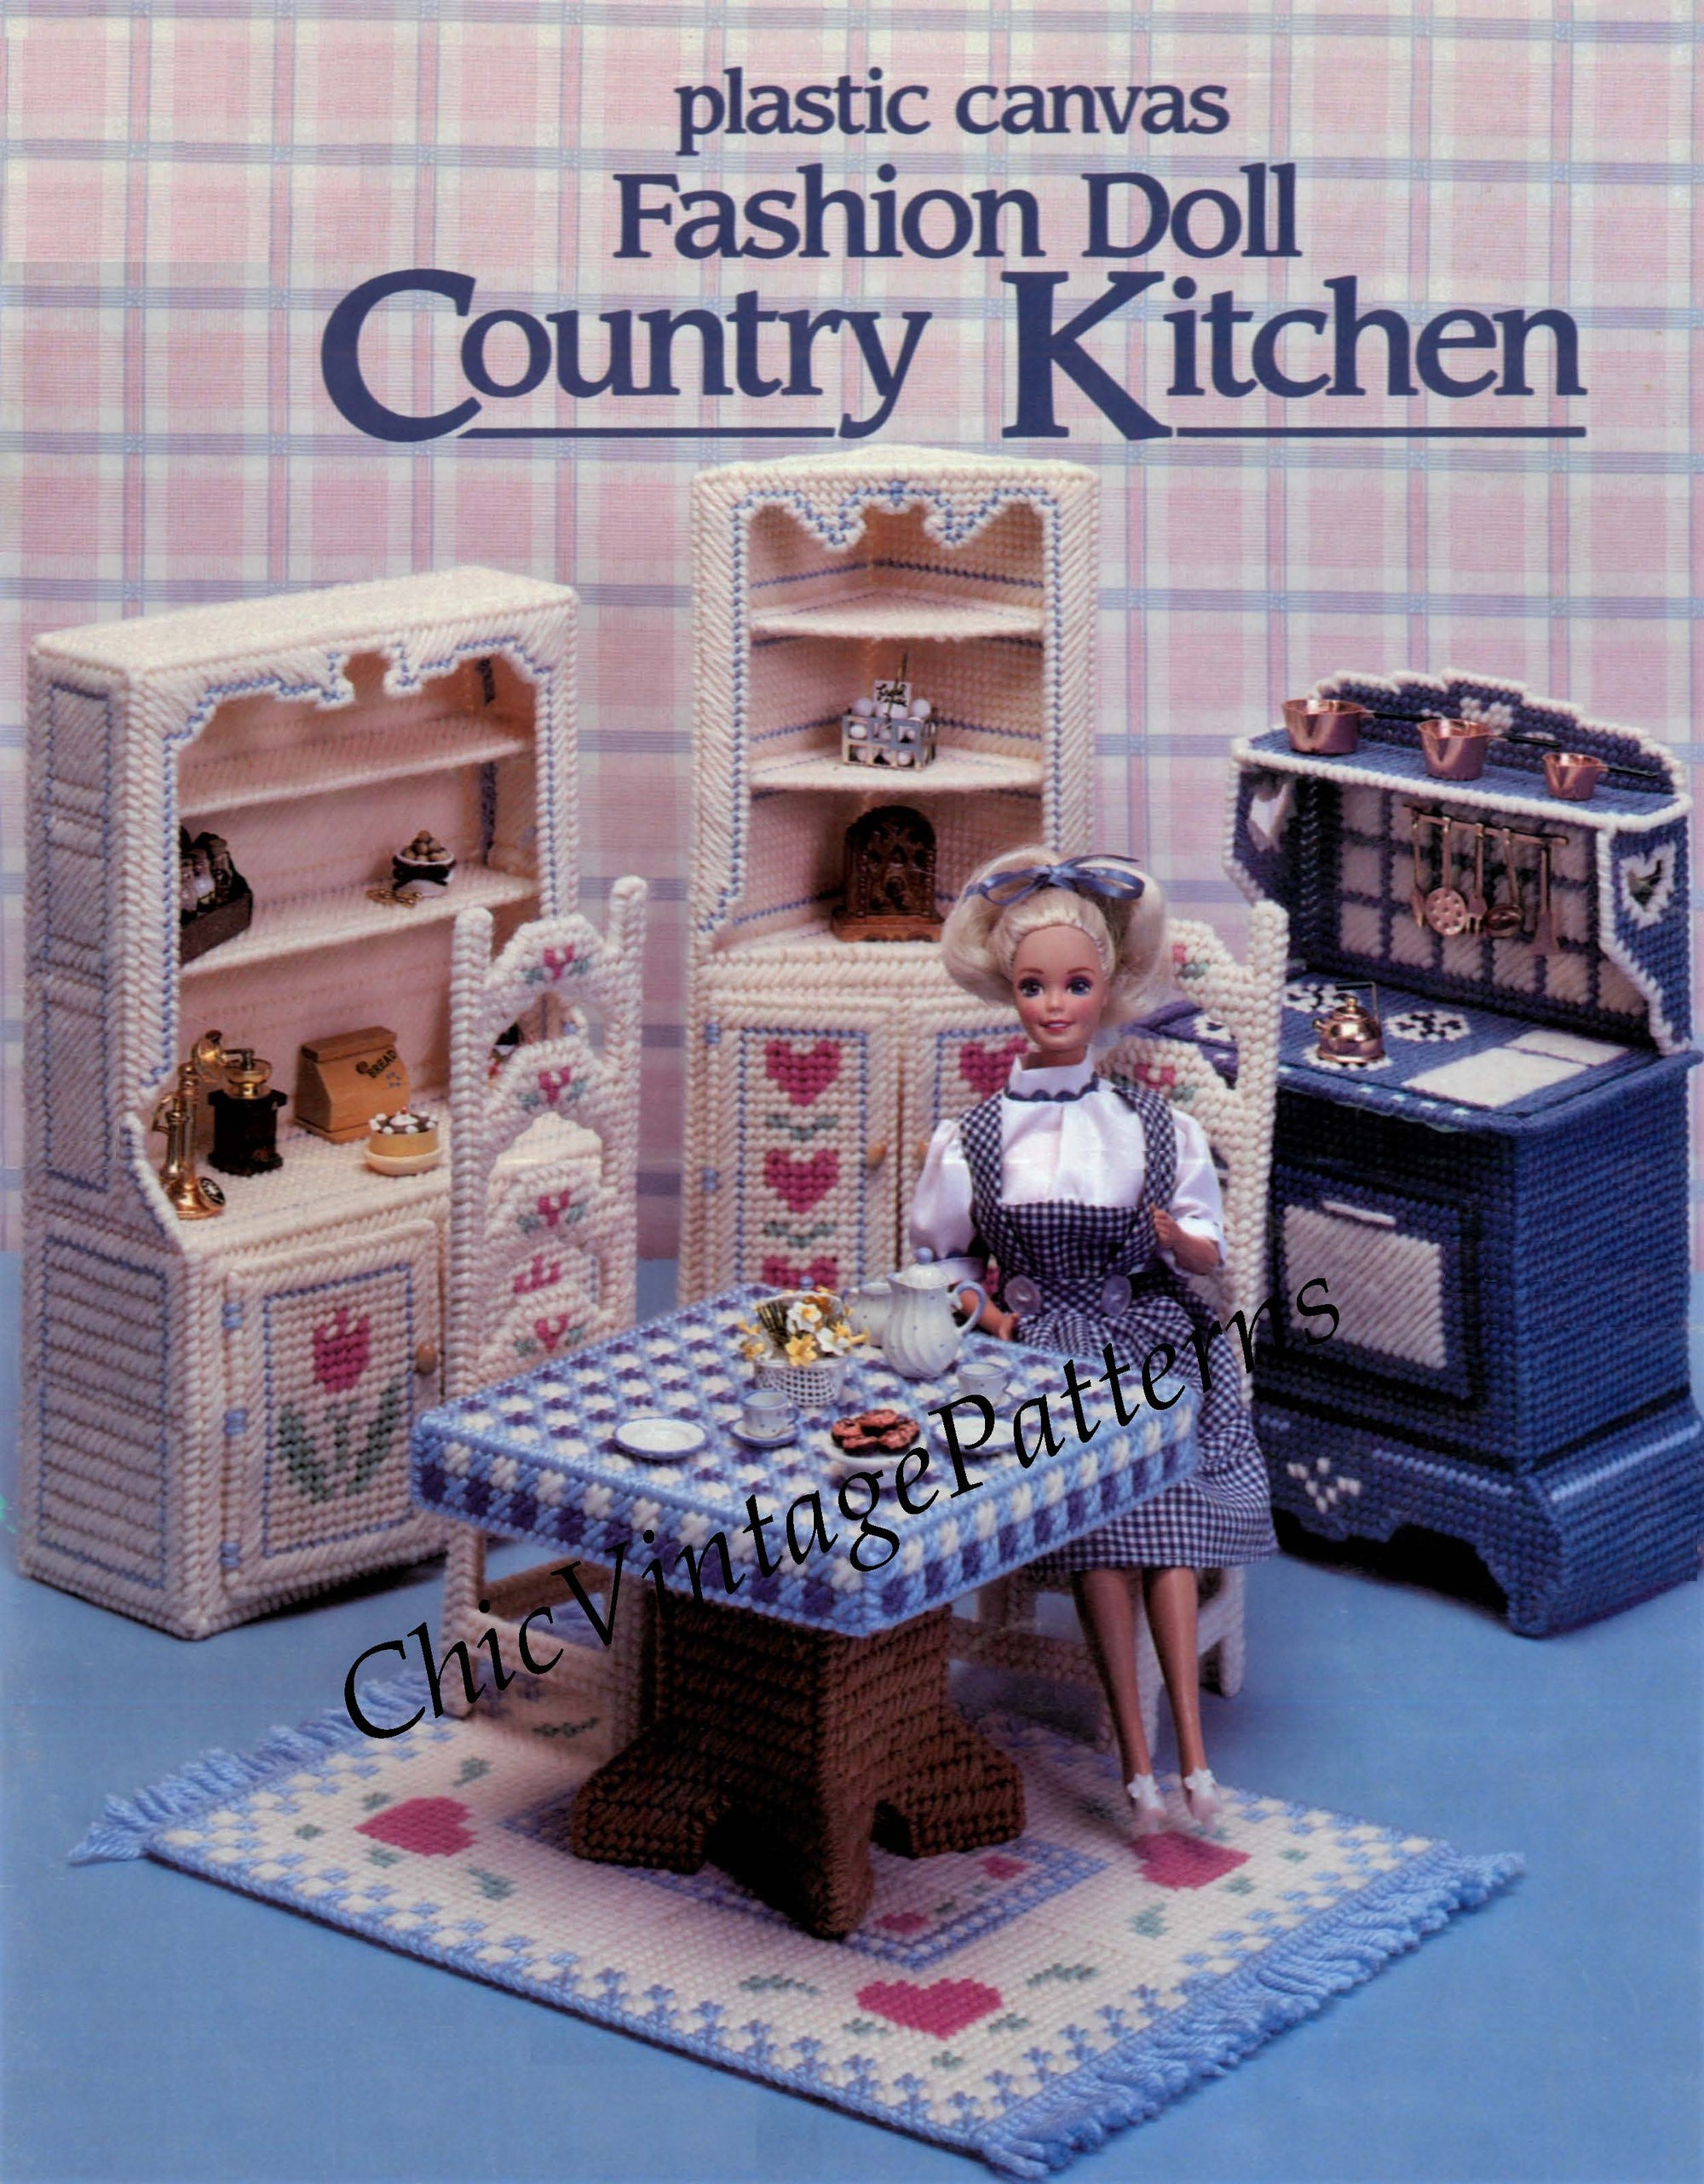 Plastic Canvas Country Kitchen Pattern, Fashion Doll, Instant Download